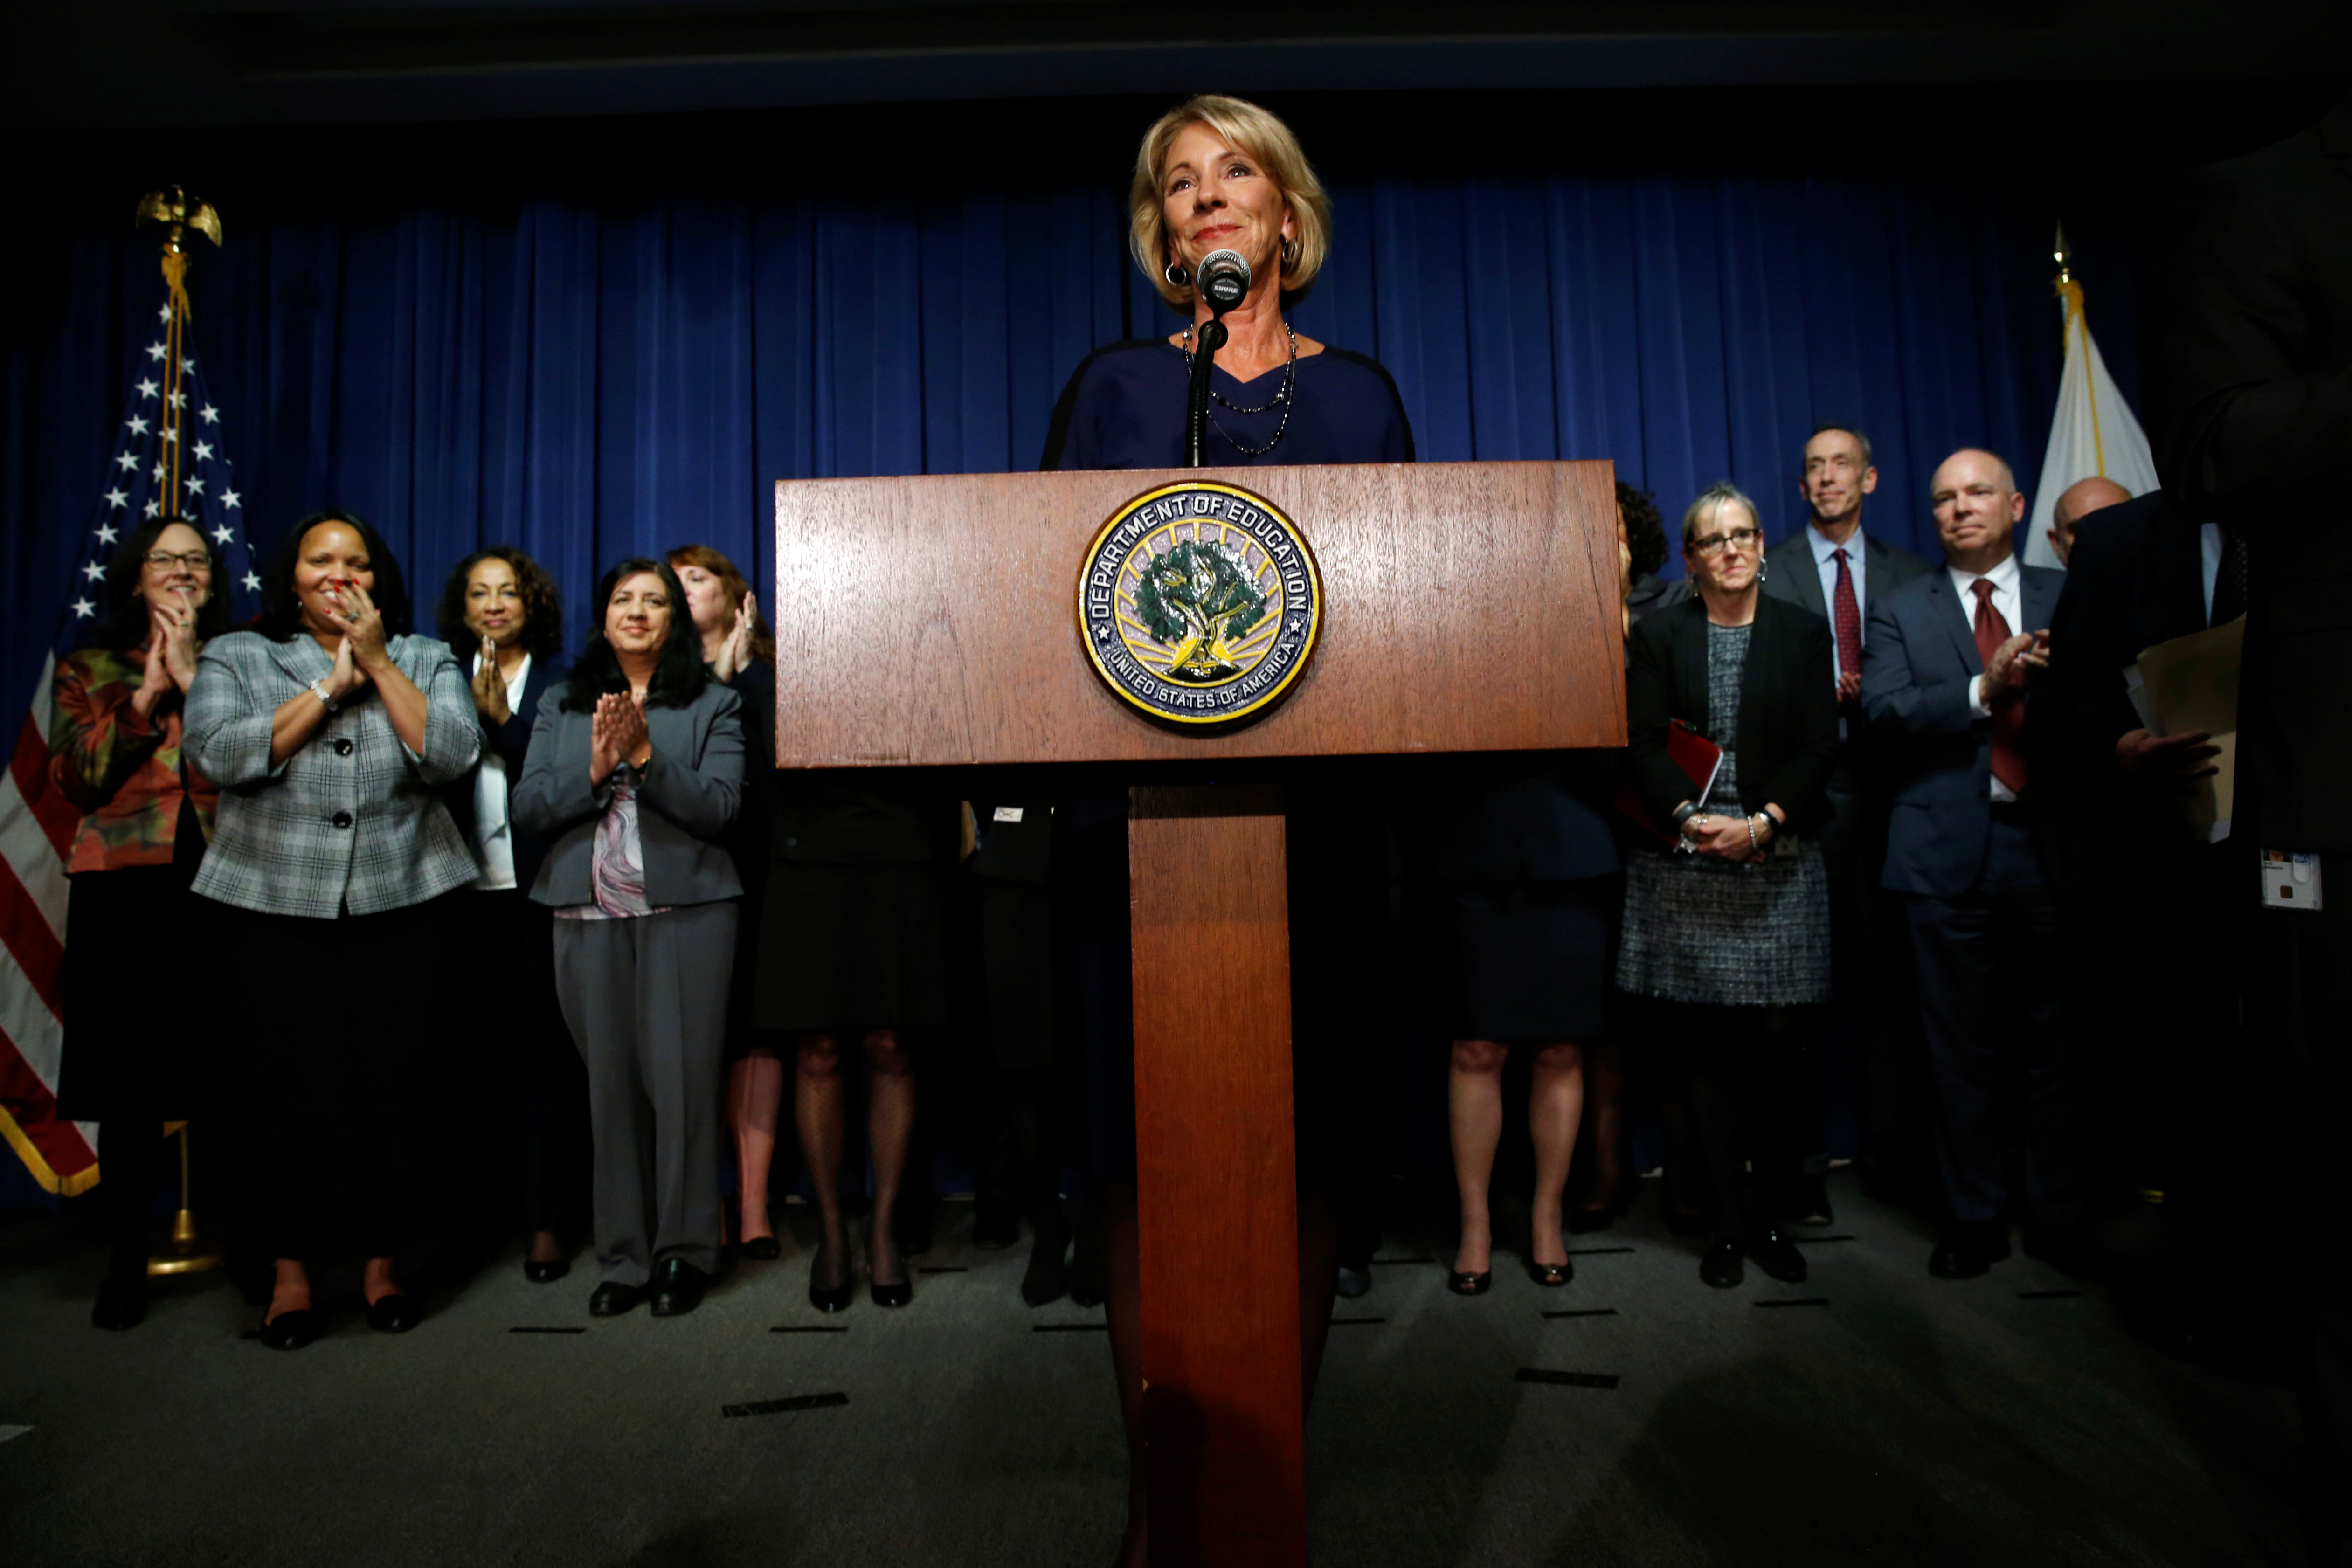 U.S. Education Secretary Betsy DeVos addresses Education Department staff on her first day on the job in Washington